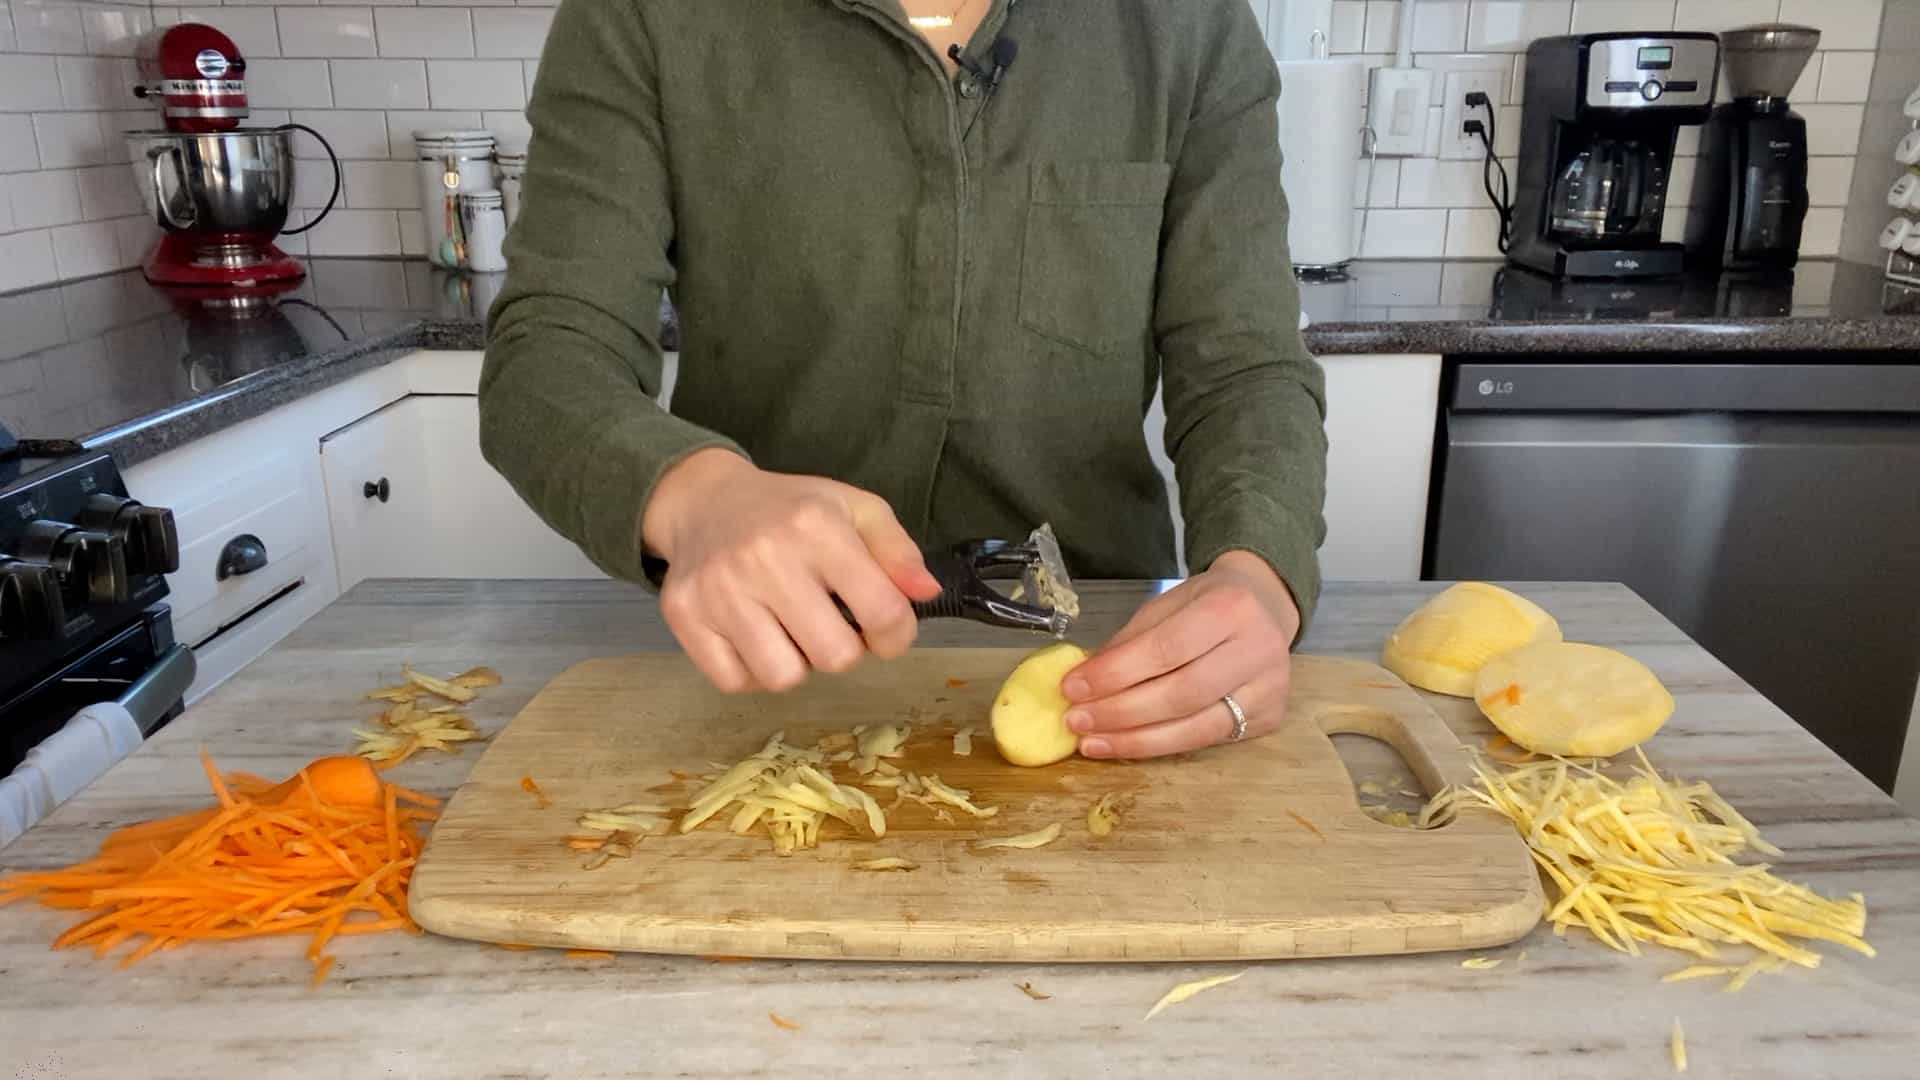 woman slicing a potato with a julienne peeler on a bamboo cutting board